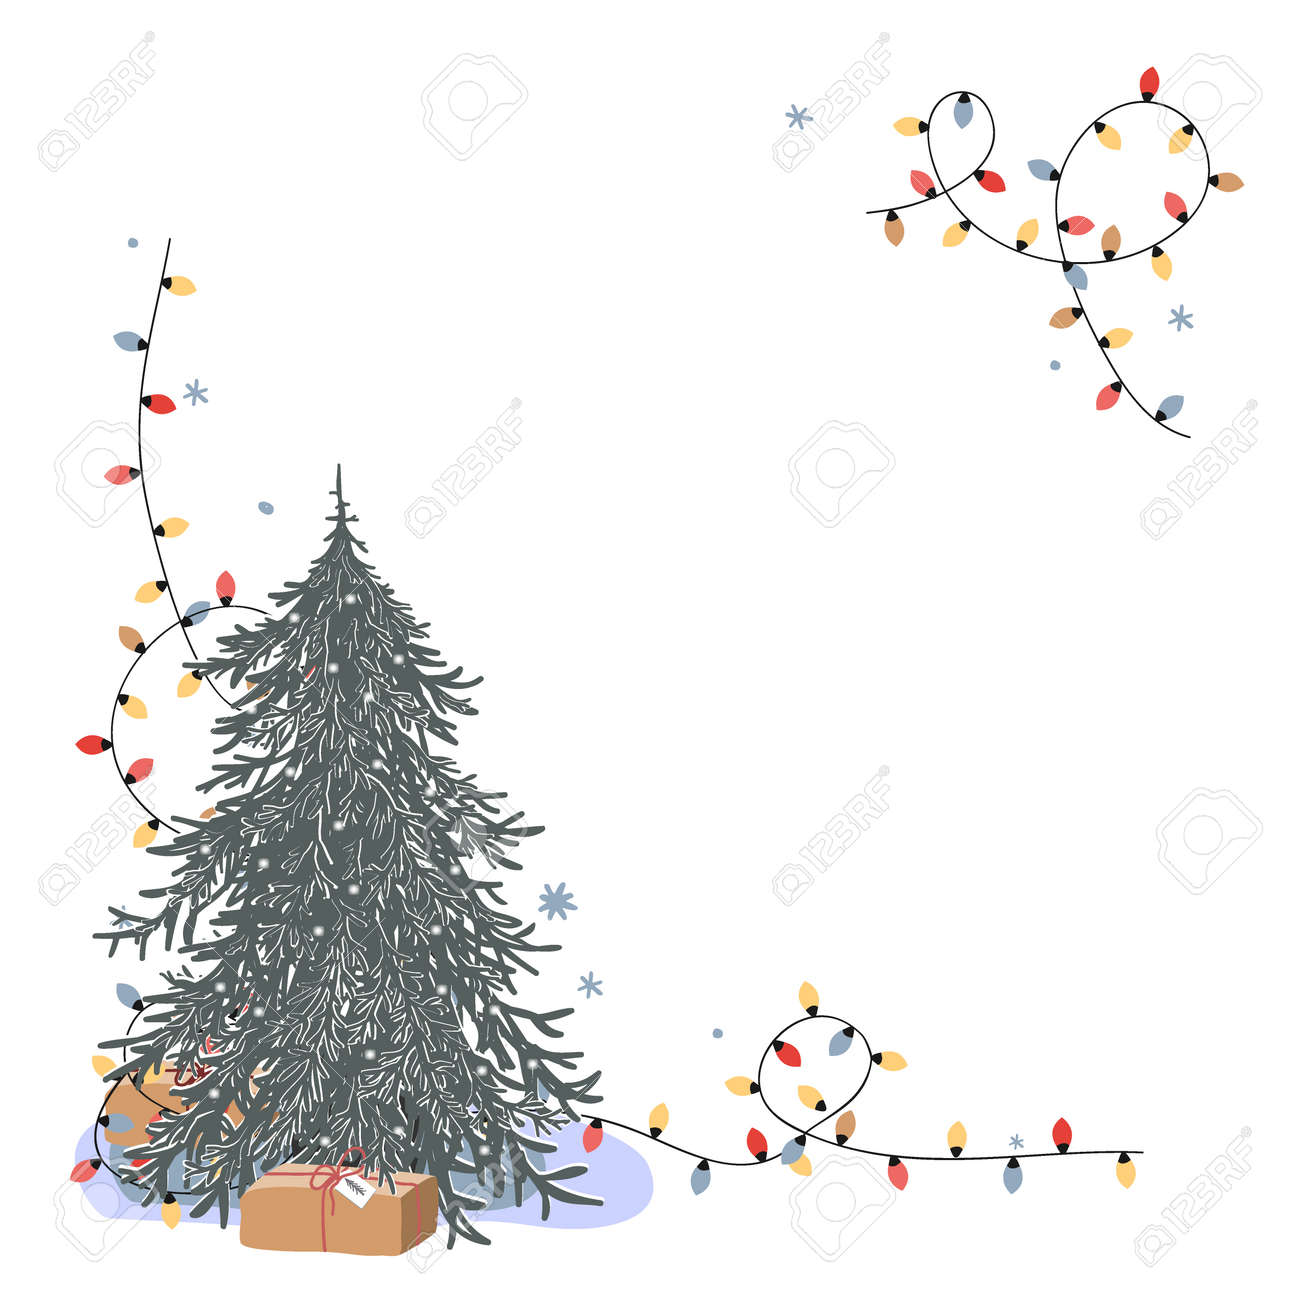 Christmas Corner Composition With Place For Text Fresh Undecorated Royalty Free Cliparts Vectors And Stock Illustration Image 158872775 Christmas and christmas , christmas tree, christmas ornament, christmas border, christmas lights, christmas wreath, christmas garland, christmas elf, christmas star, nightmare before christmas, christmas santa, christmas cartoon, christmas reindeer, christmas stocking. christmas corner composition with place for text fresh undecorated